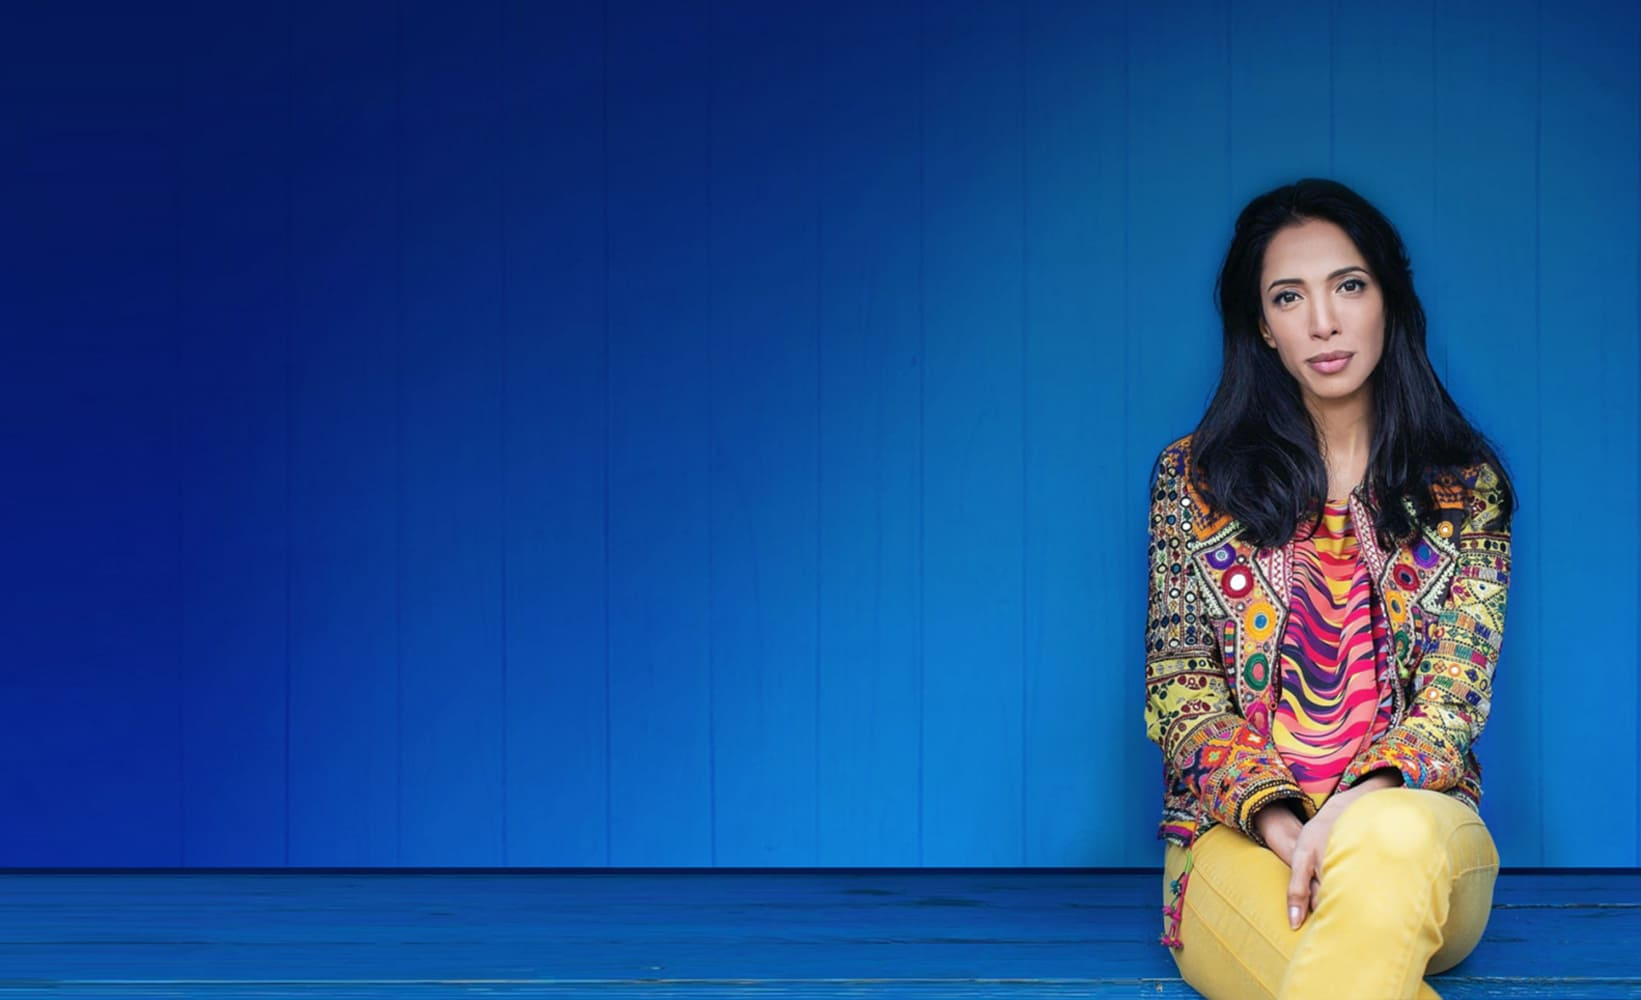 Zohre Esmaeli woman with black hair sitting in a colorful patterned jacket and yellow pants in front of a blue background